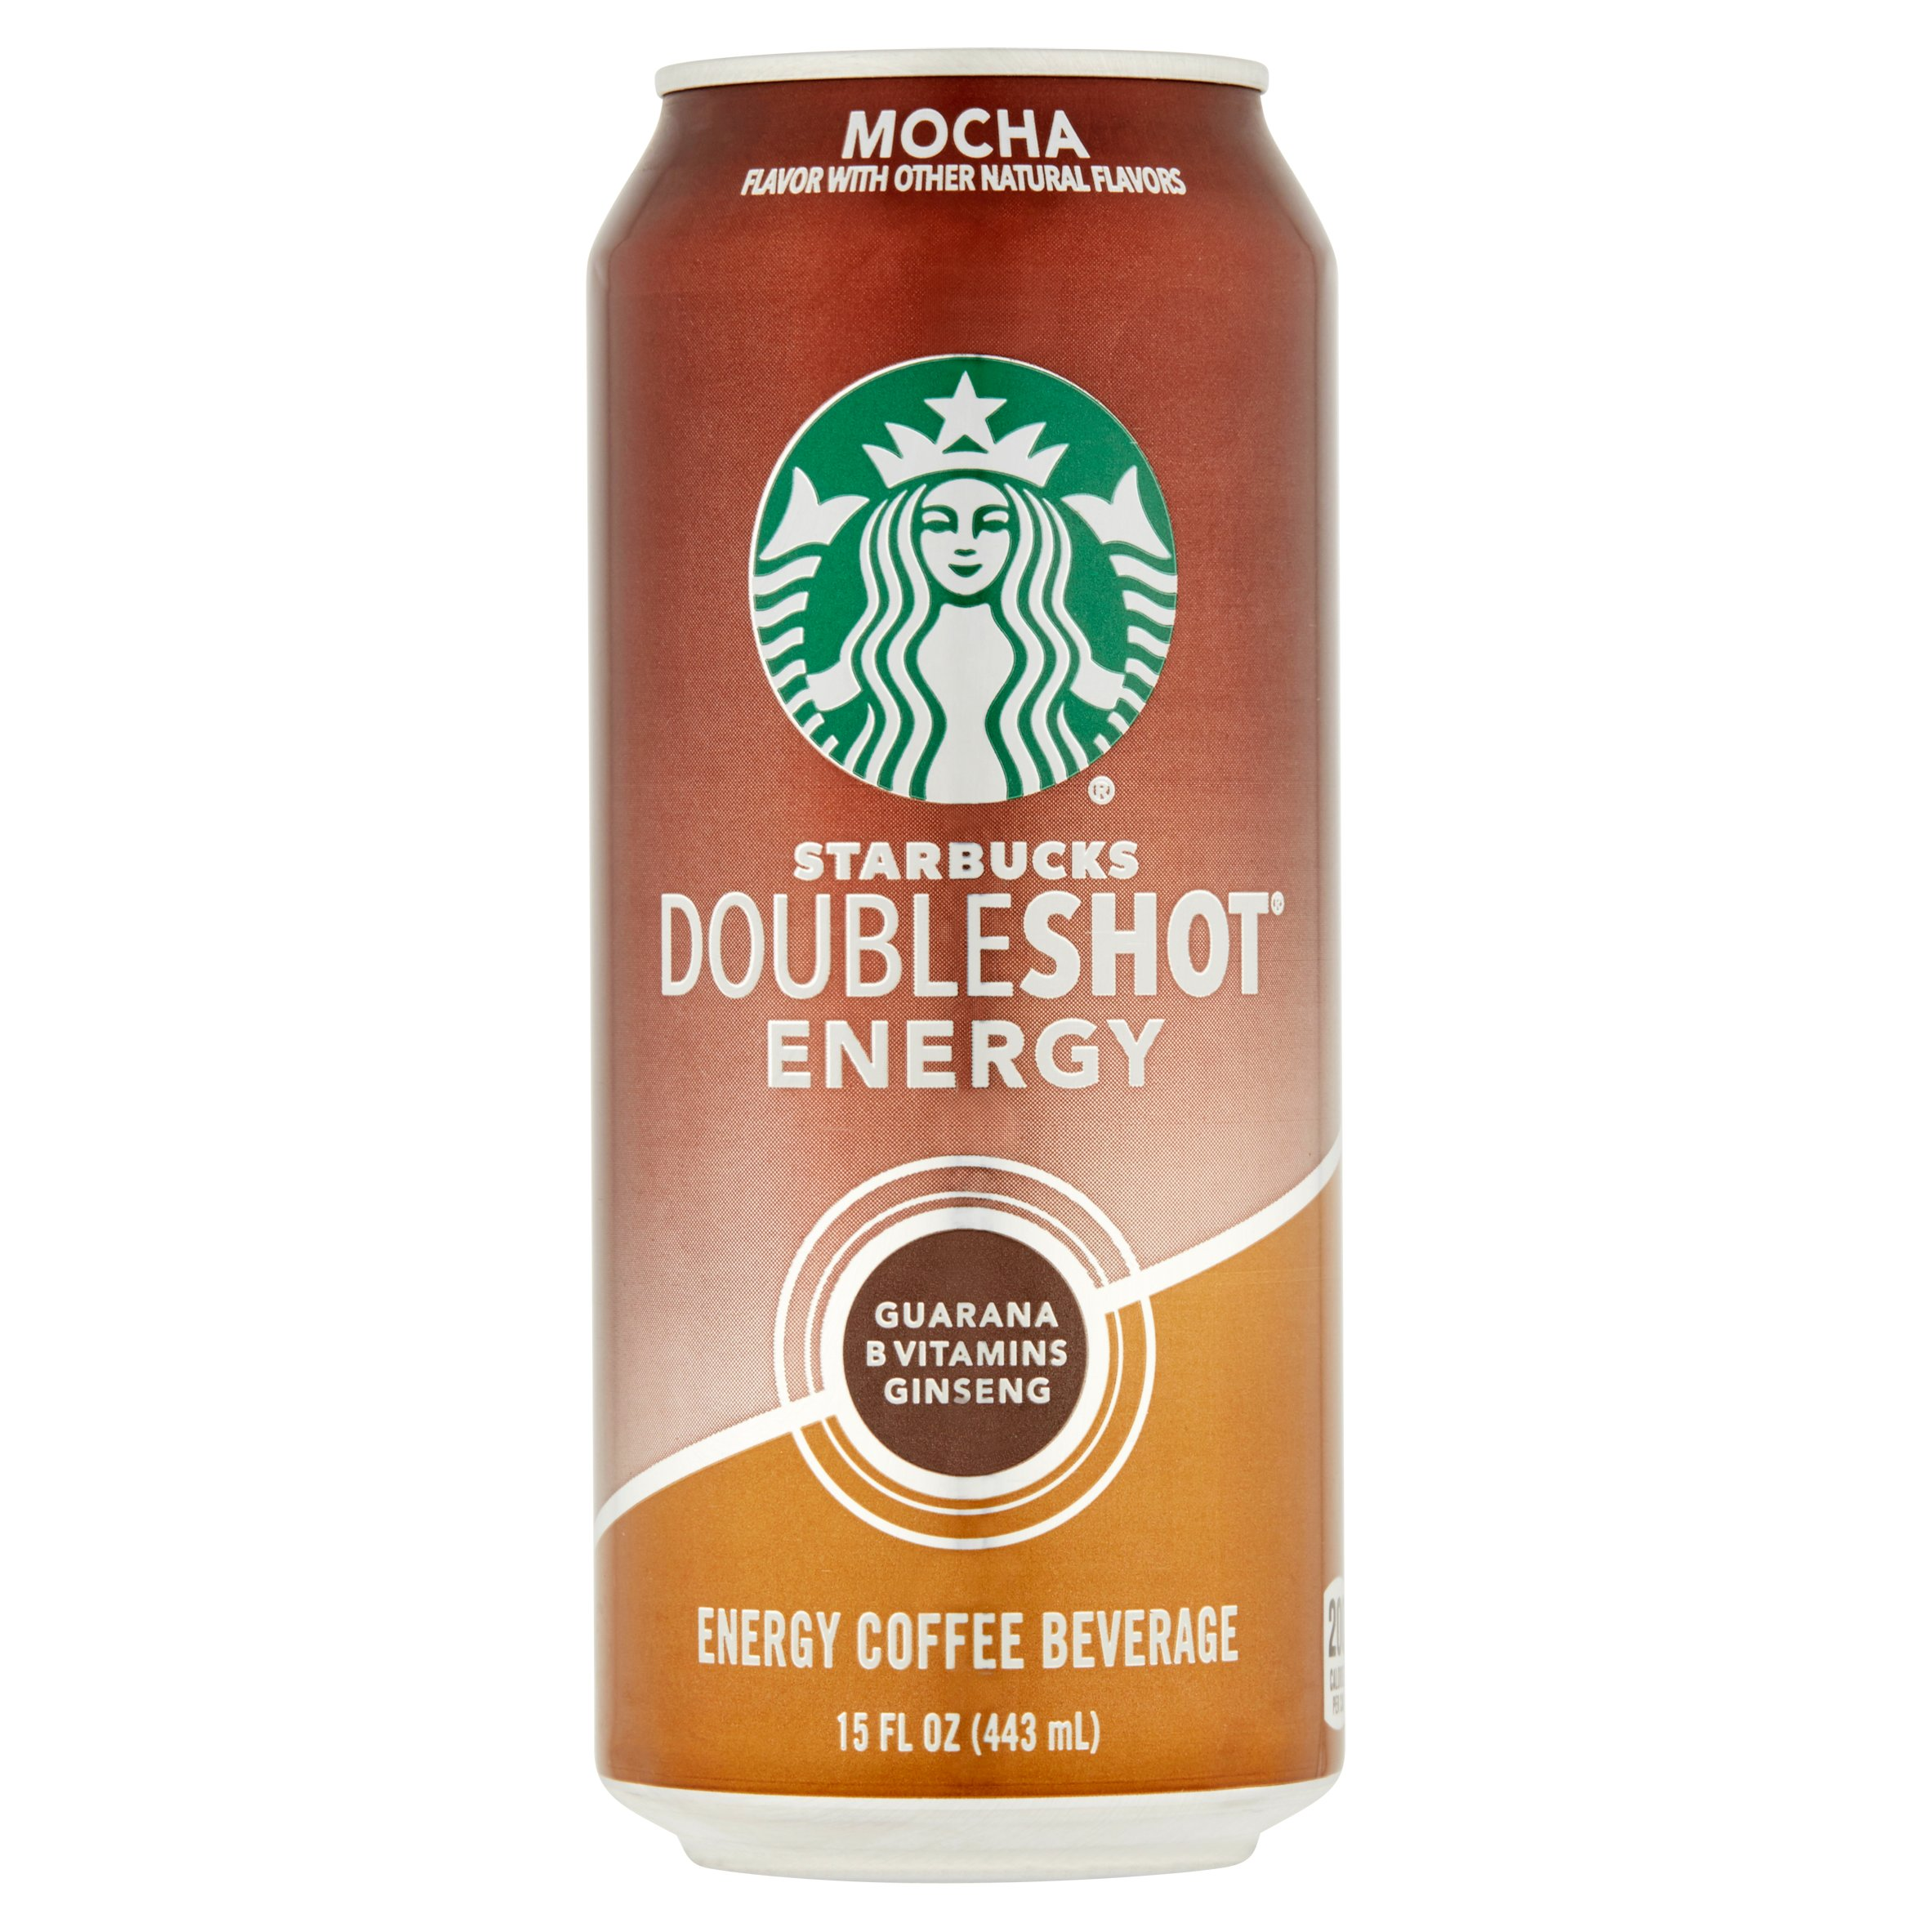 Starbucks Doubleshot Mocha Energy Coffee Beverage, 15 fl oz